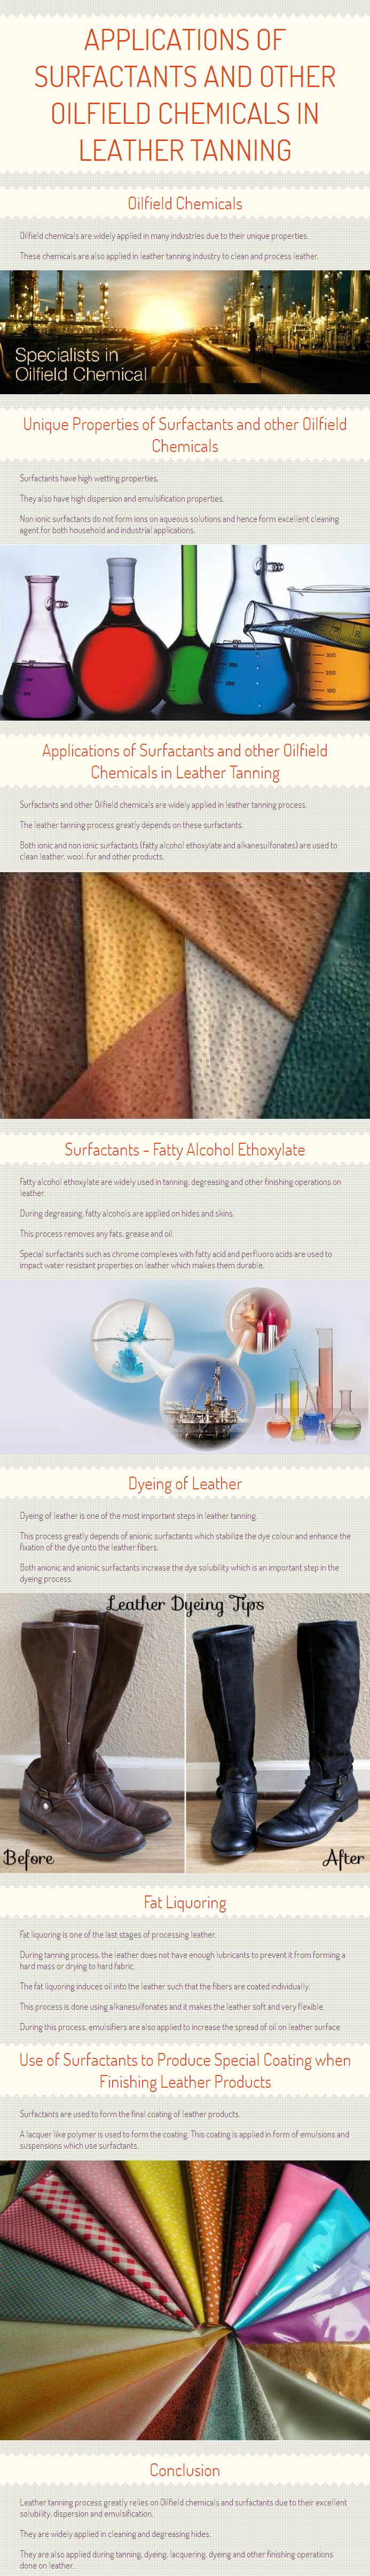 Applications of surfactants and Oilfield chemicals in Leather Tanning